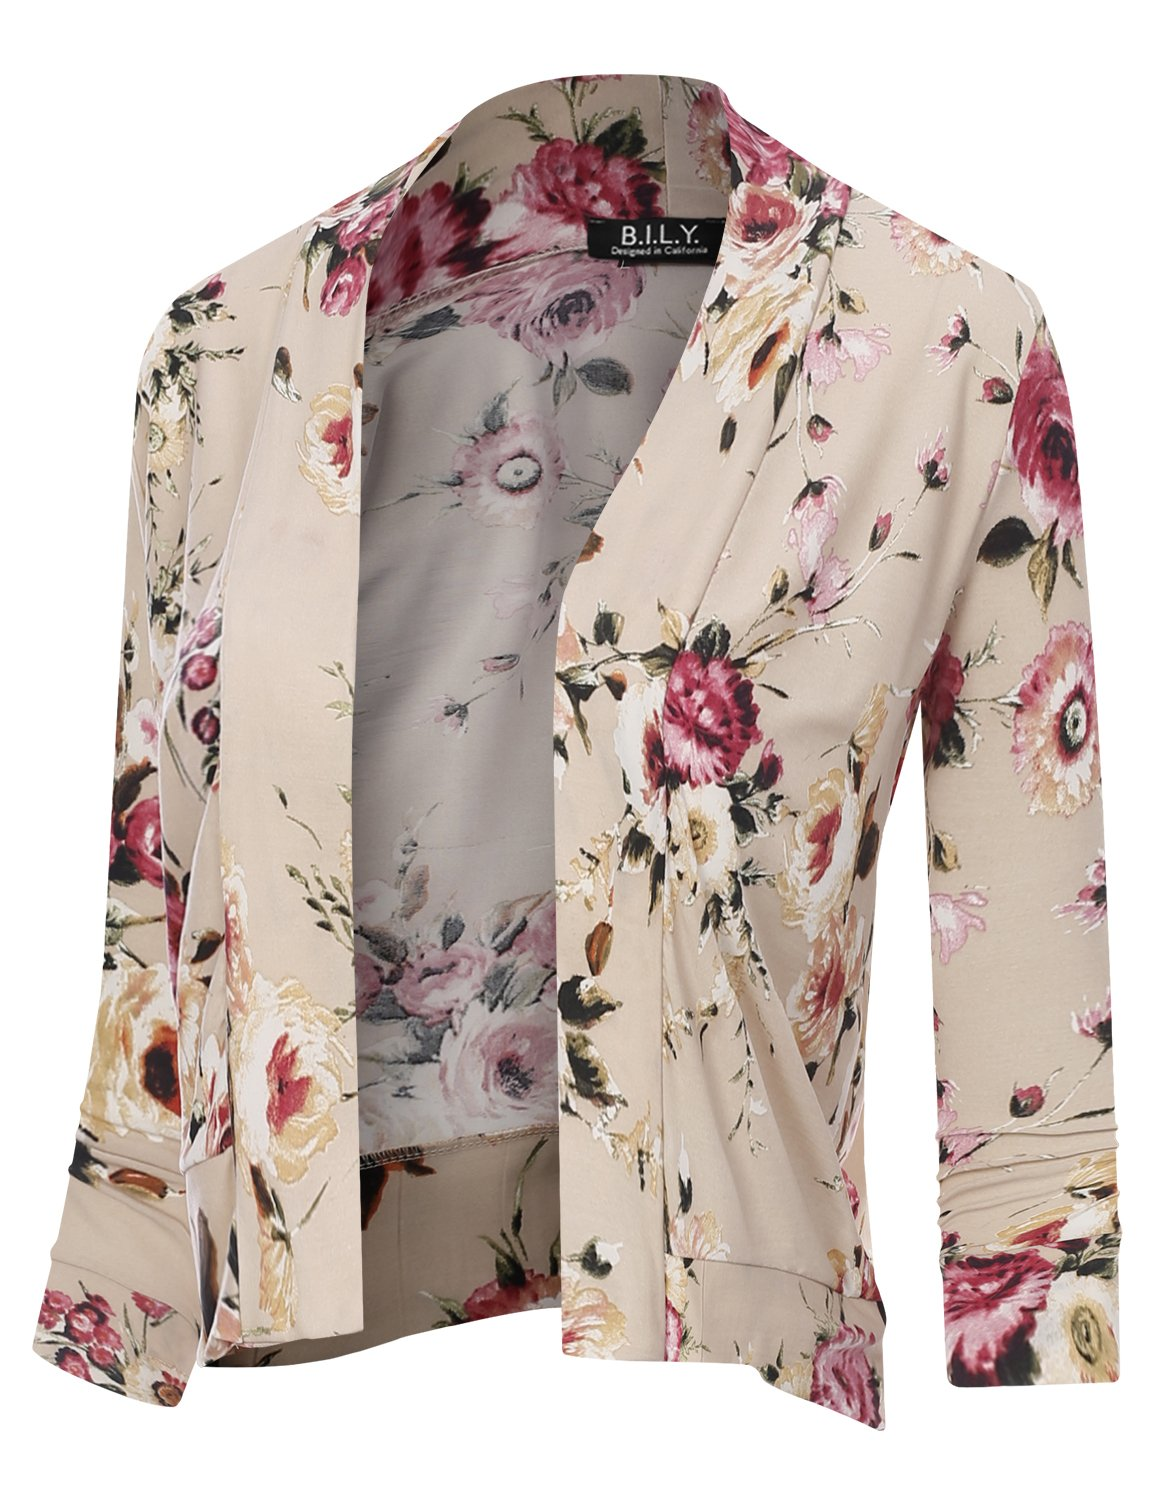 BILY Women's Classic Open Front Cropped 3/4 Sleeve Floral Print Cardigan 11992 Stone Medium by B.I.L.Y (Image #1)